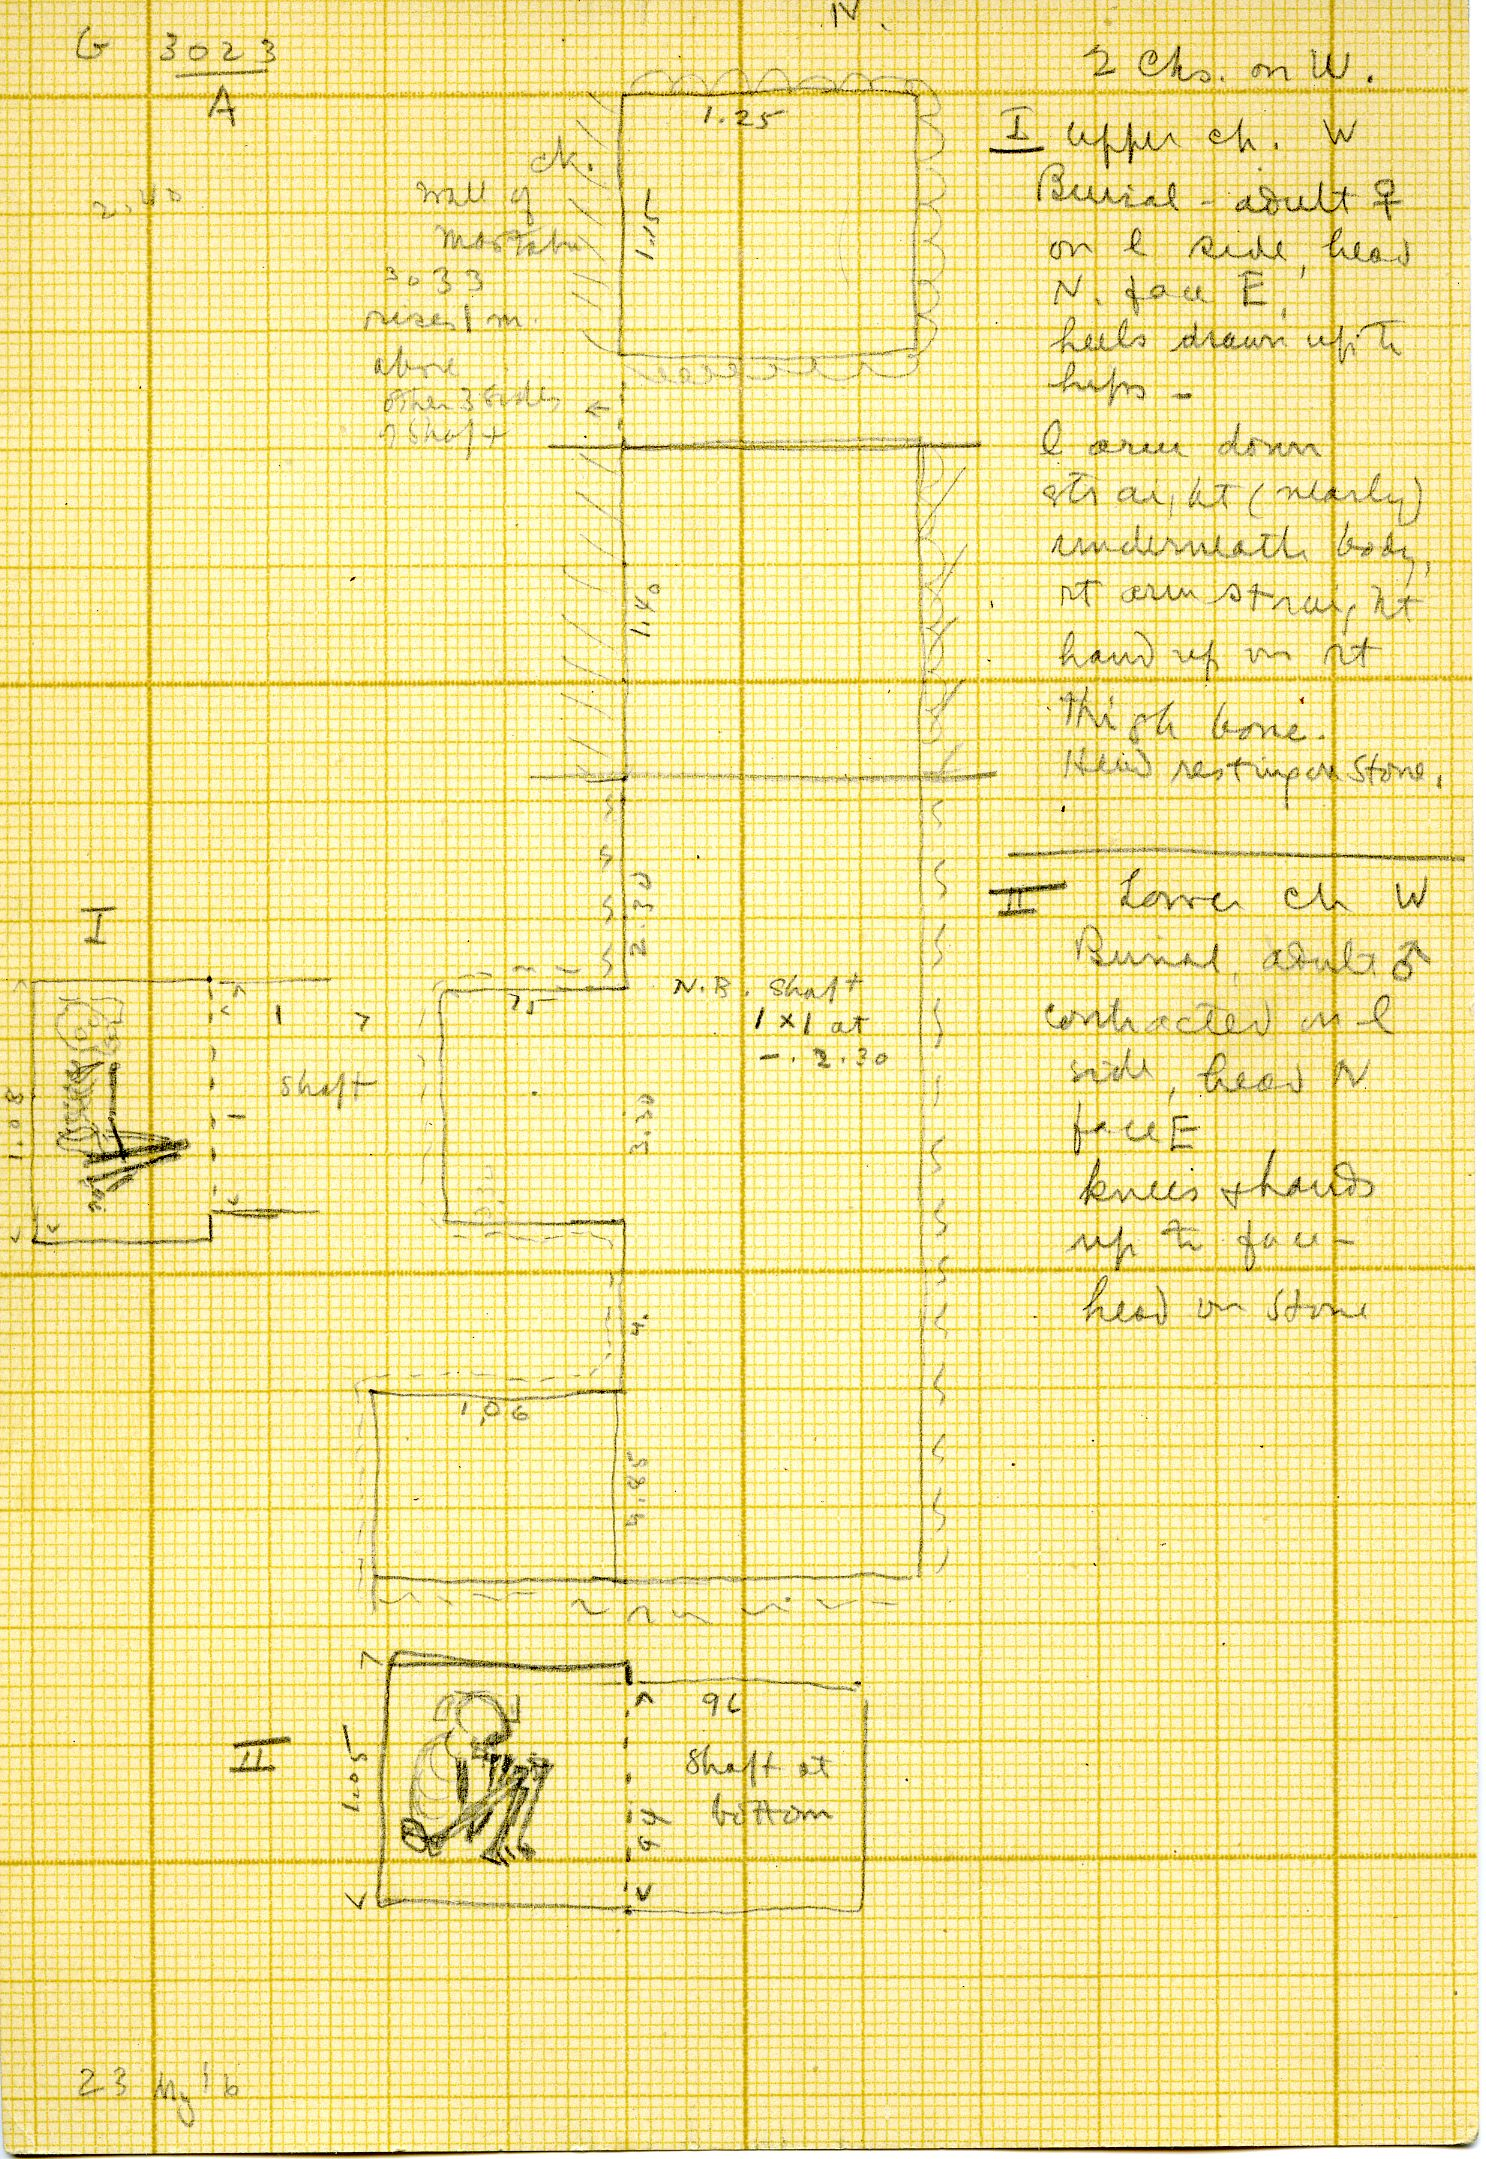 Maps and plans: G 3023, Shaft A